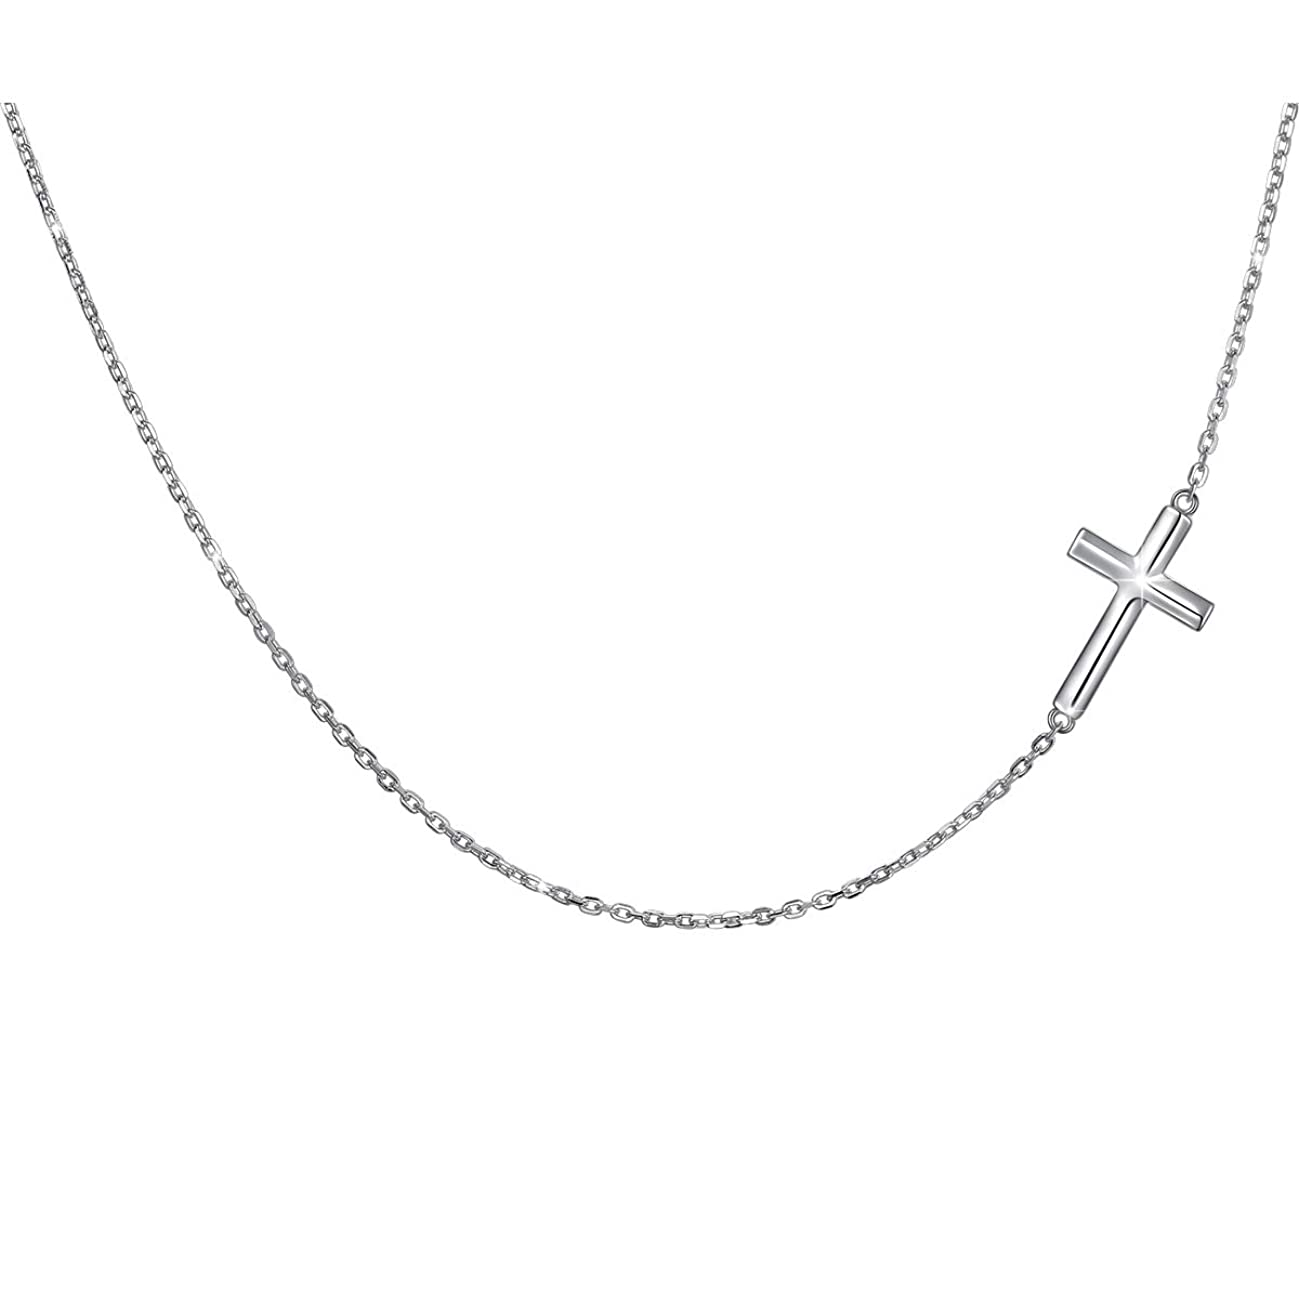 S925 Sterling Silver Jewelry Sideways Cross Choker Necklace 14 inches to 18 inches